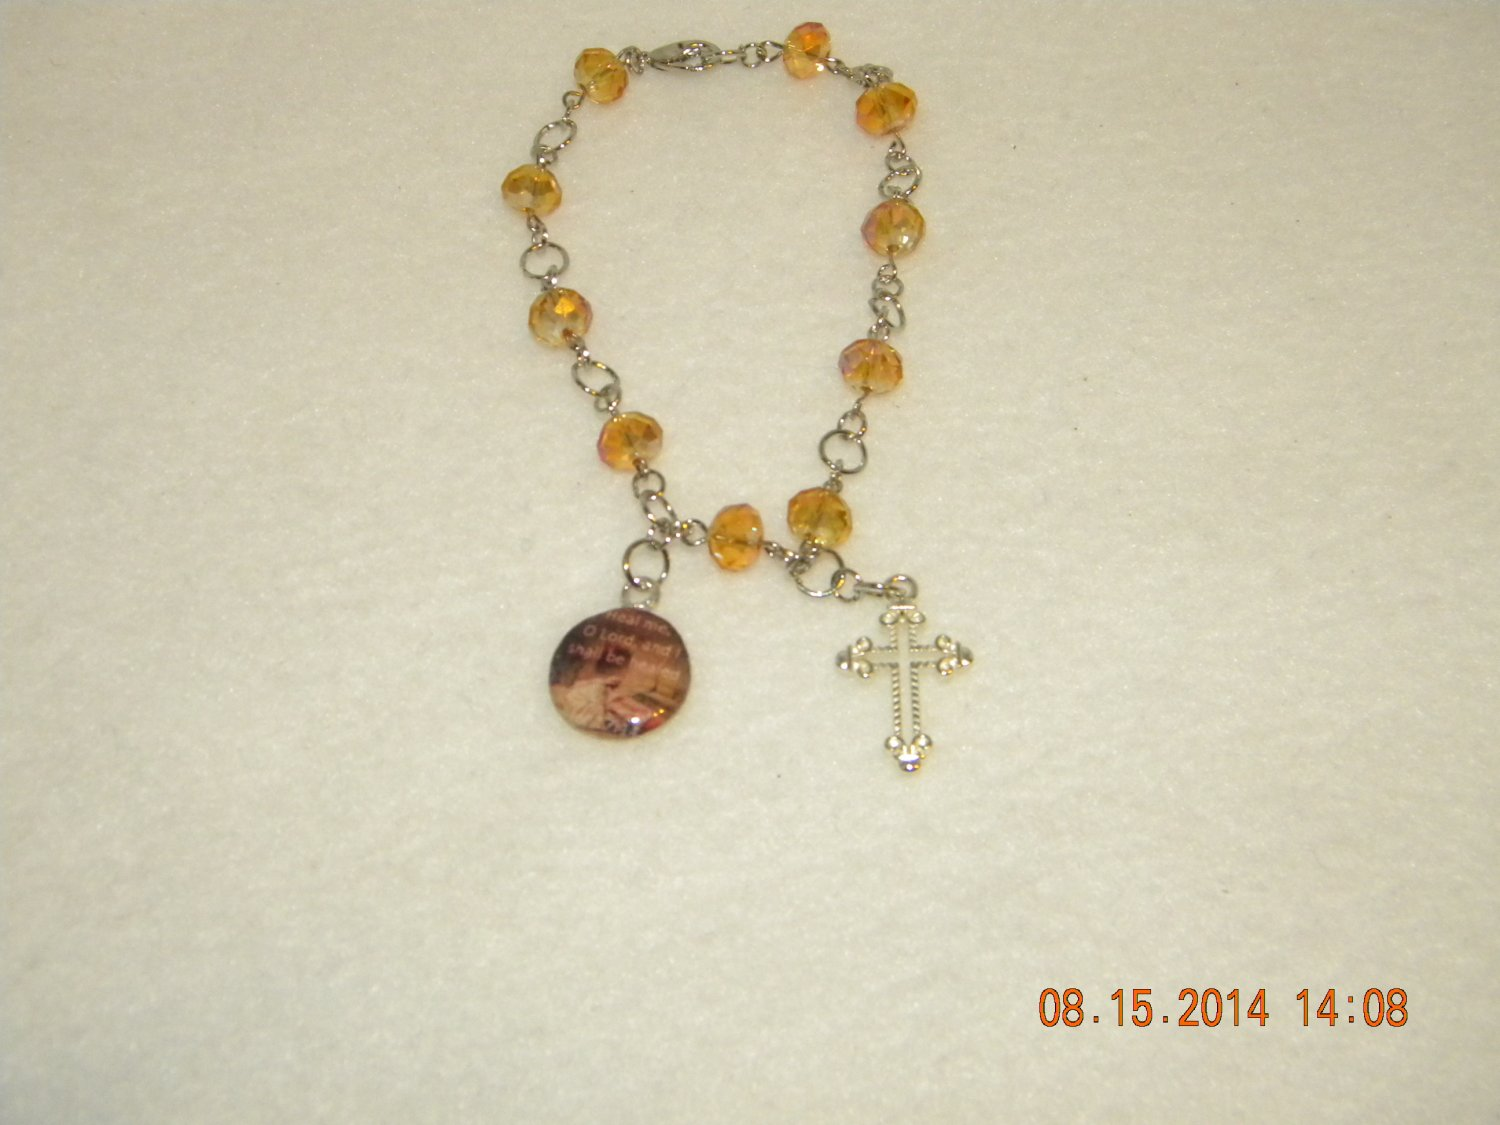 Golden glow charm bracelet w/ Jer.17:14 Bible verse charm and Cross